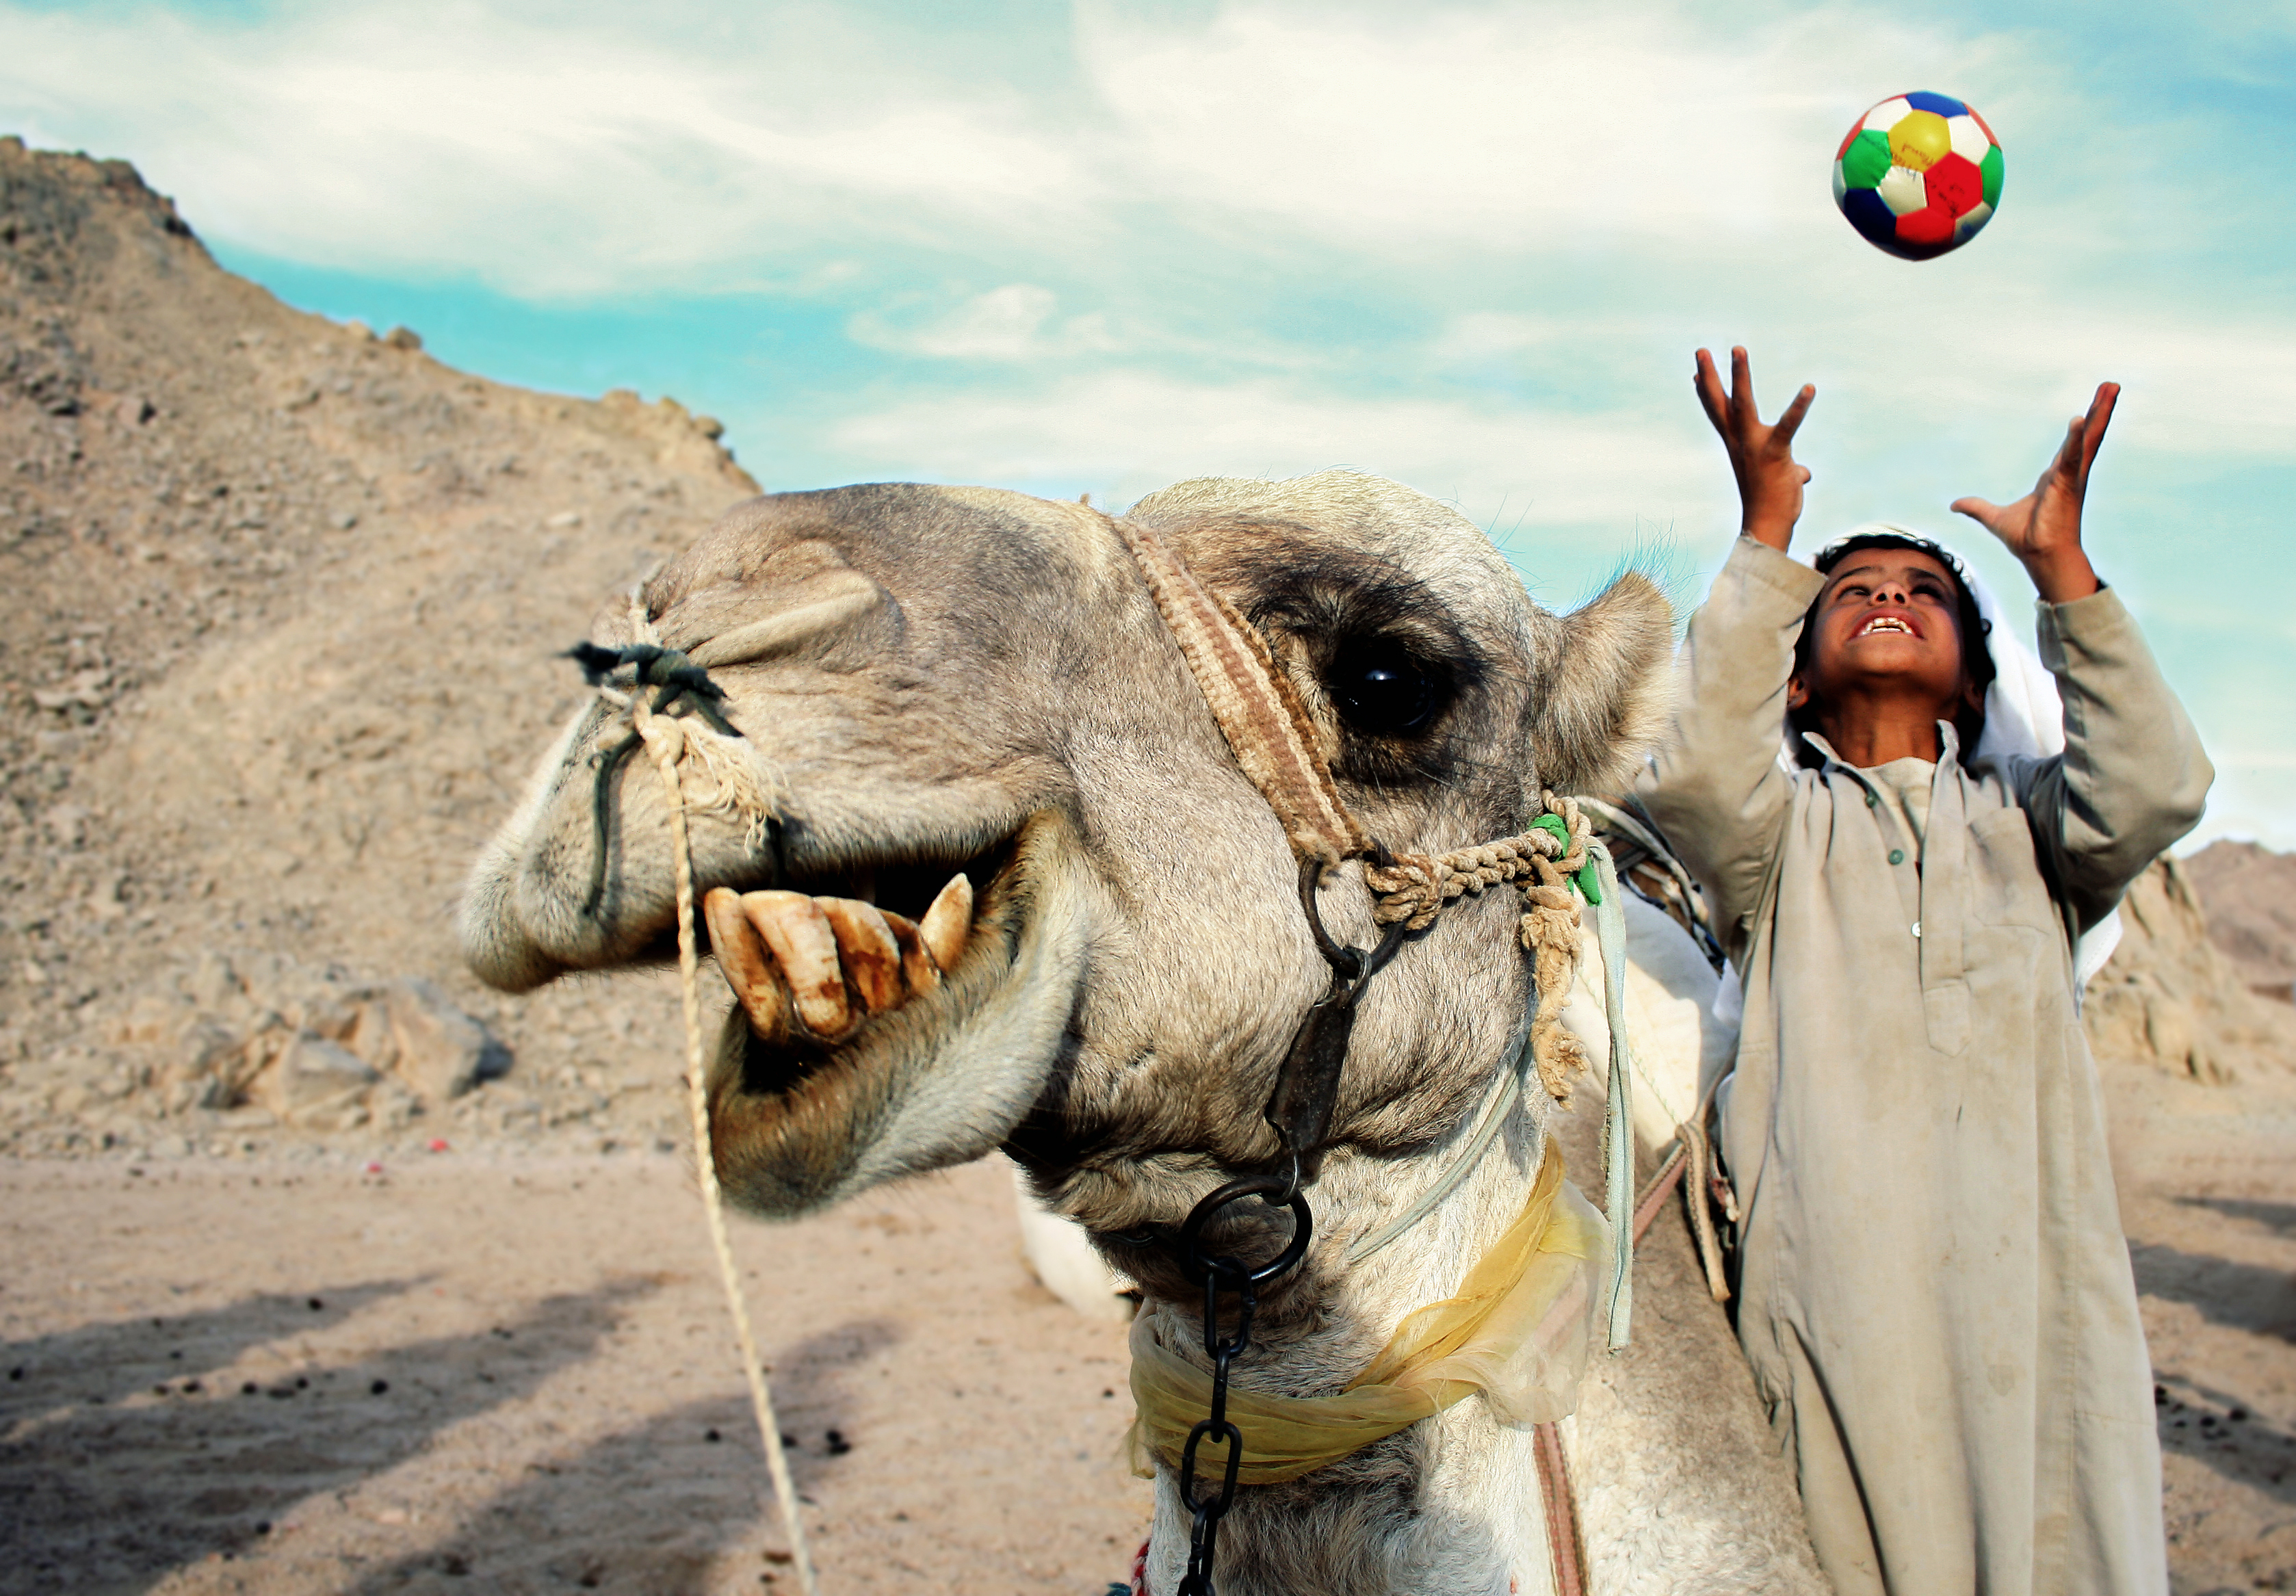 A happy camel and boy photo